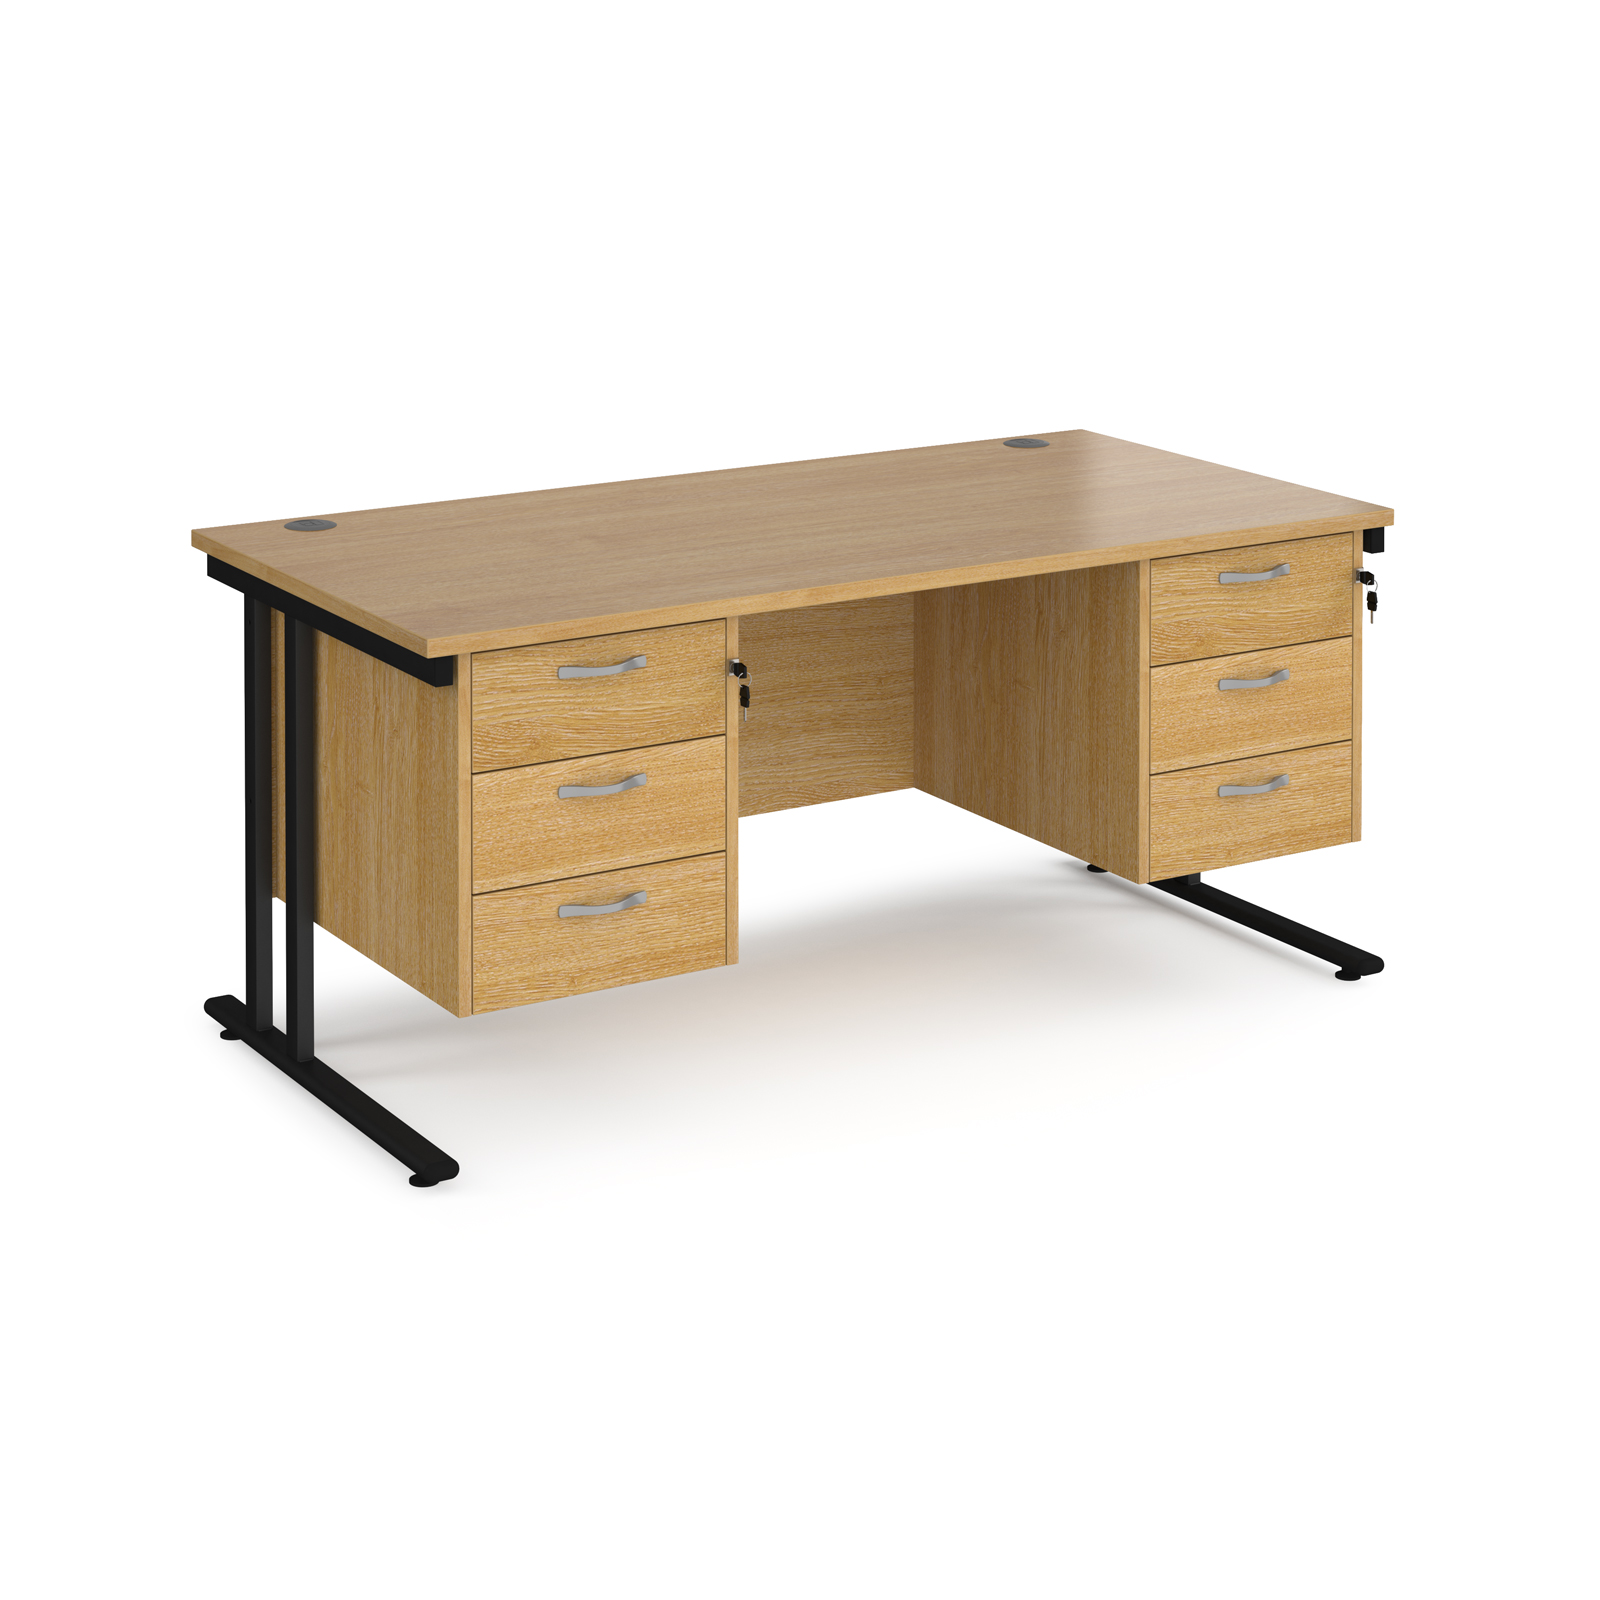 Maestro 25 straight desk 1600mm x 800mm with two x 3 drawer pedestals - black cantilever leg frame, oak top